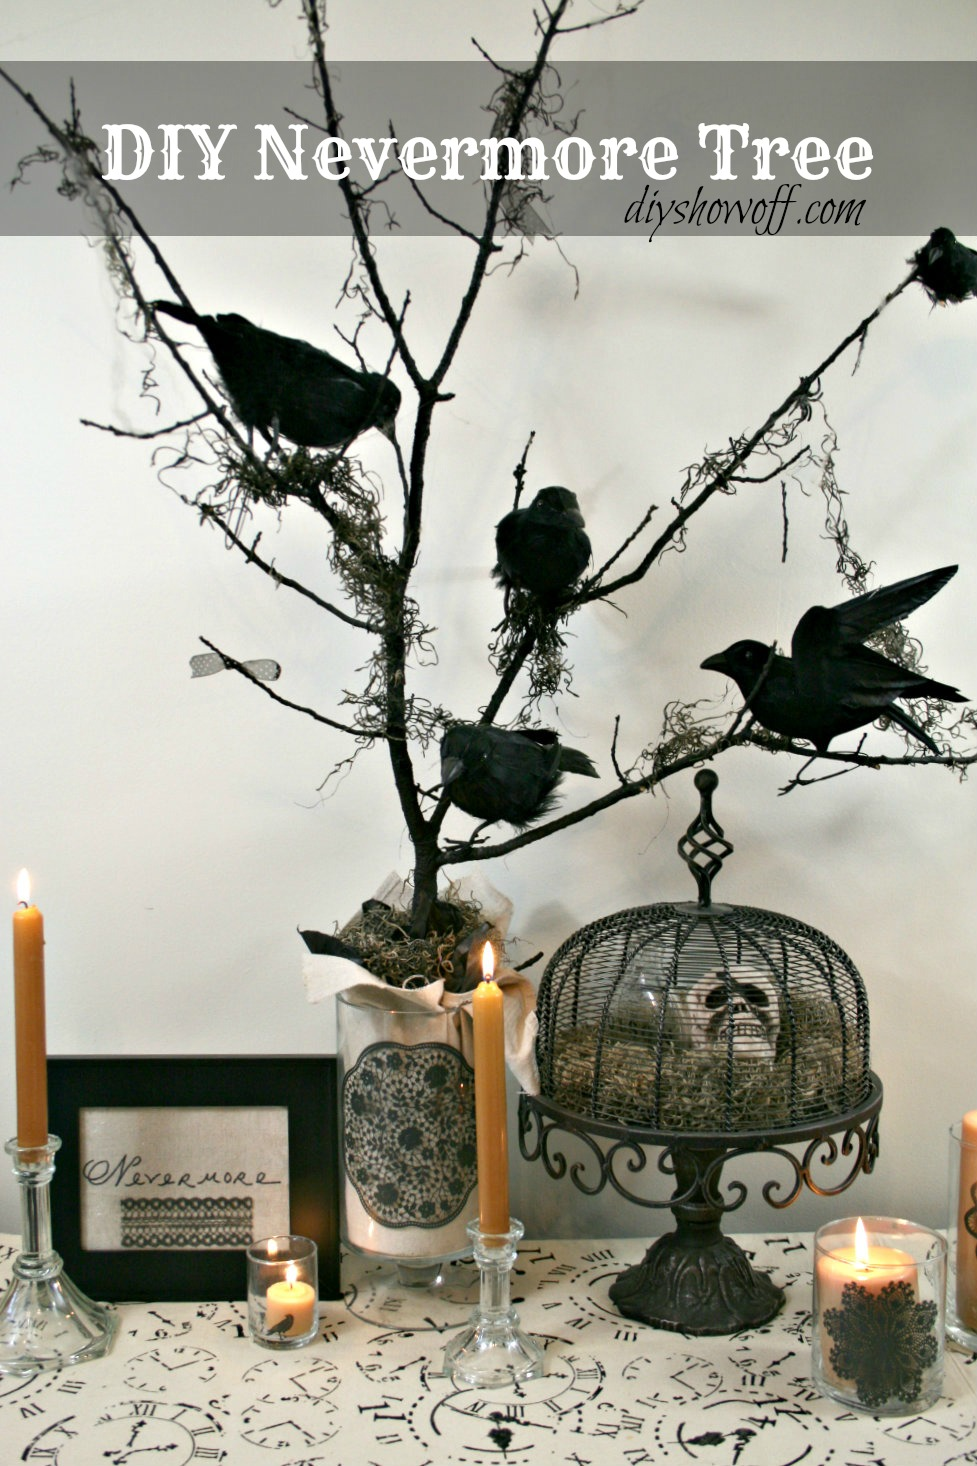 Halloween archives diy show off diy decorating and home diy halloween nevermore tree solutioingenieria